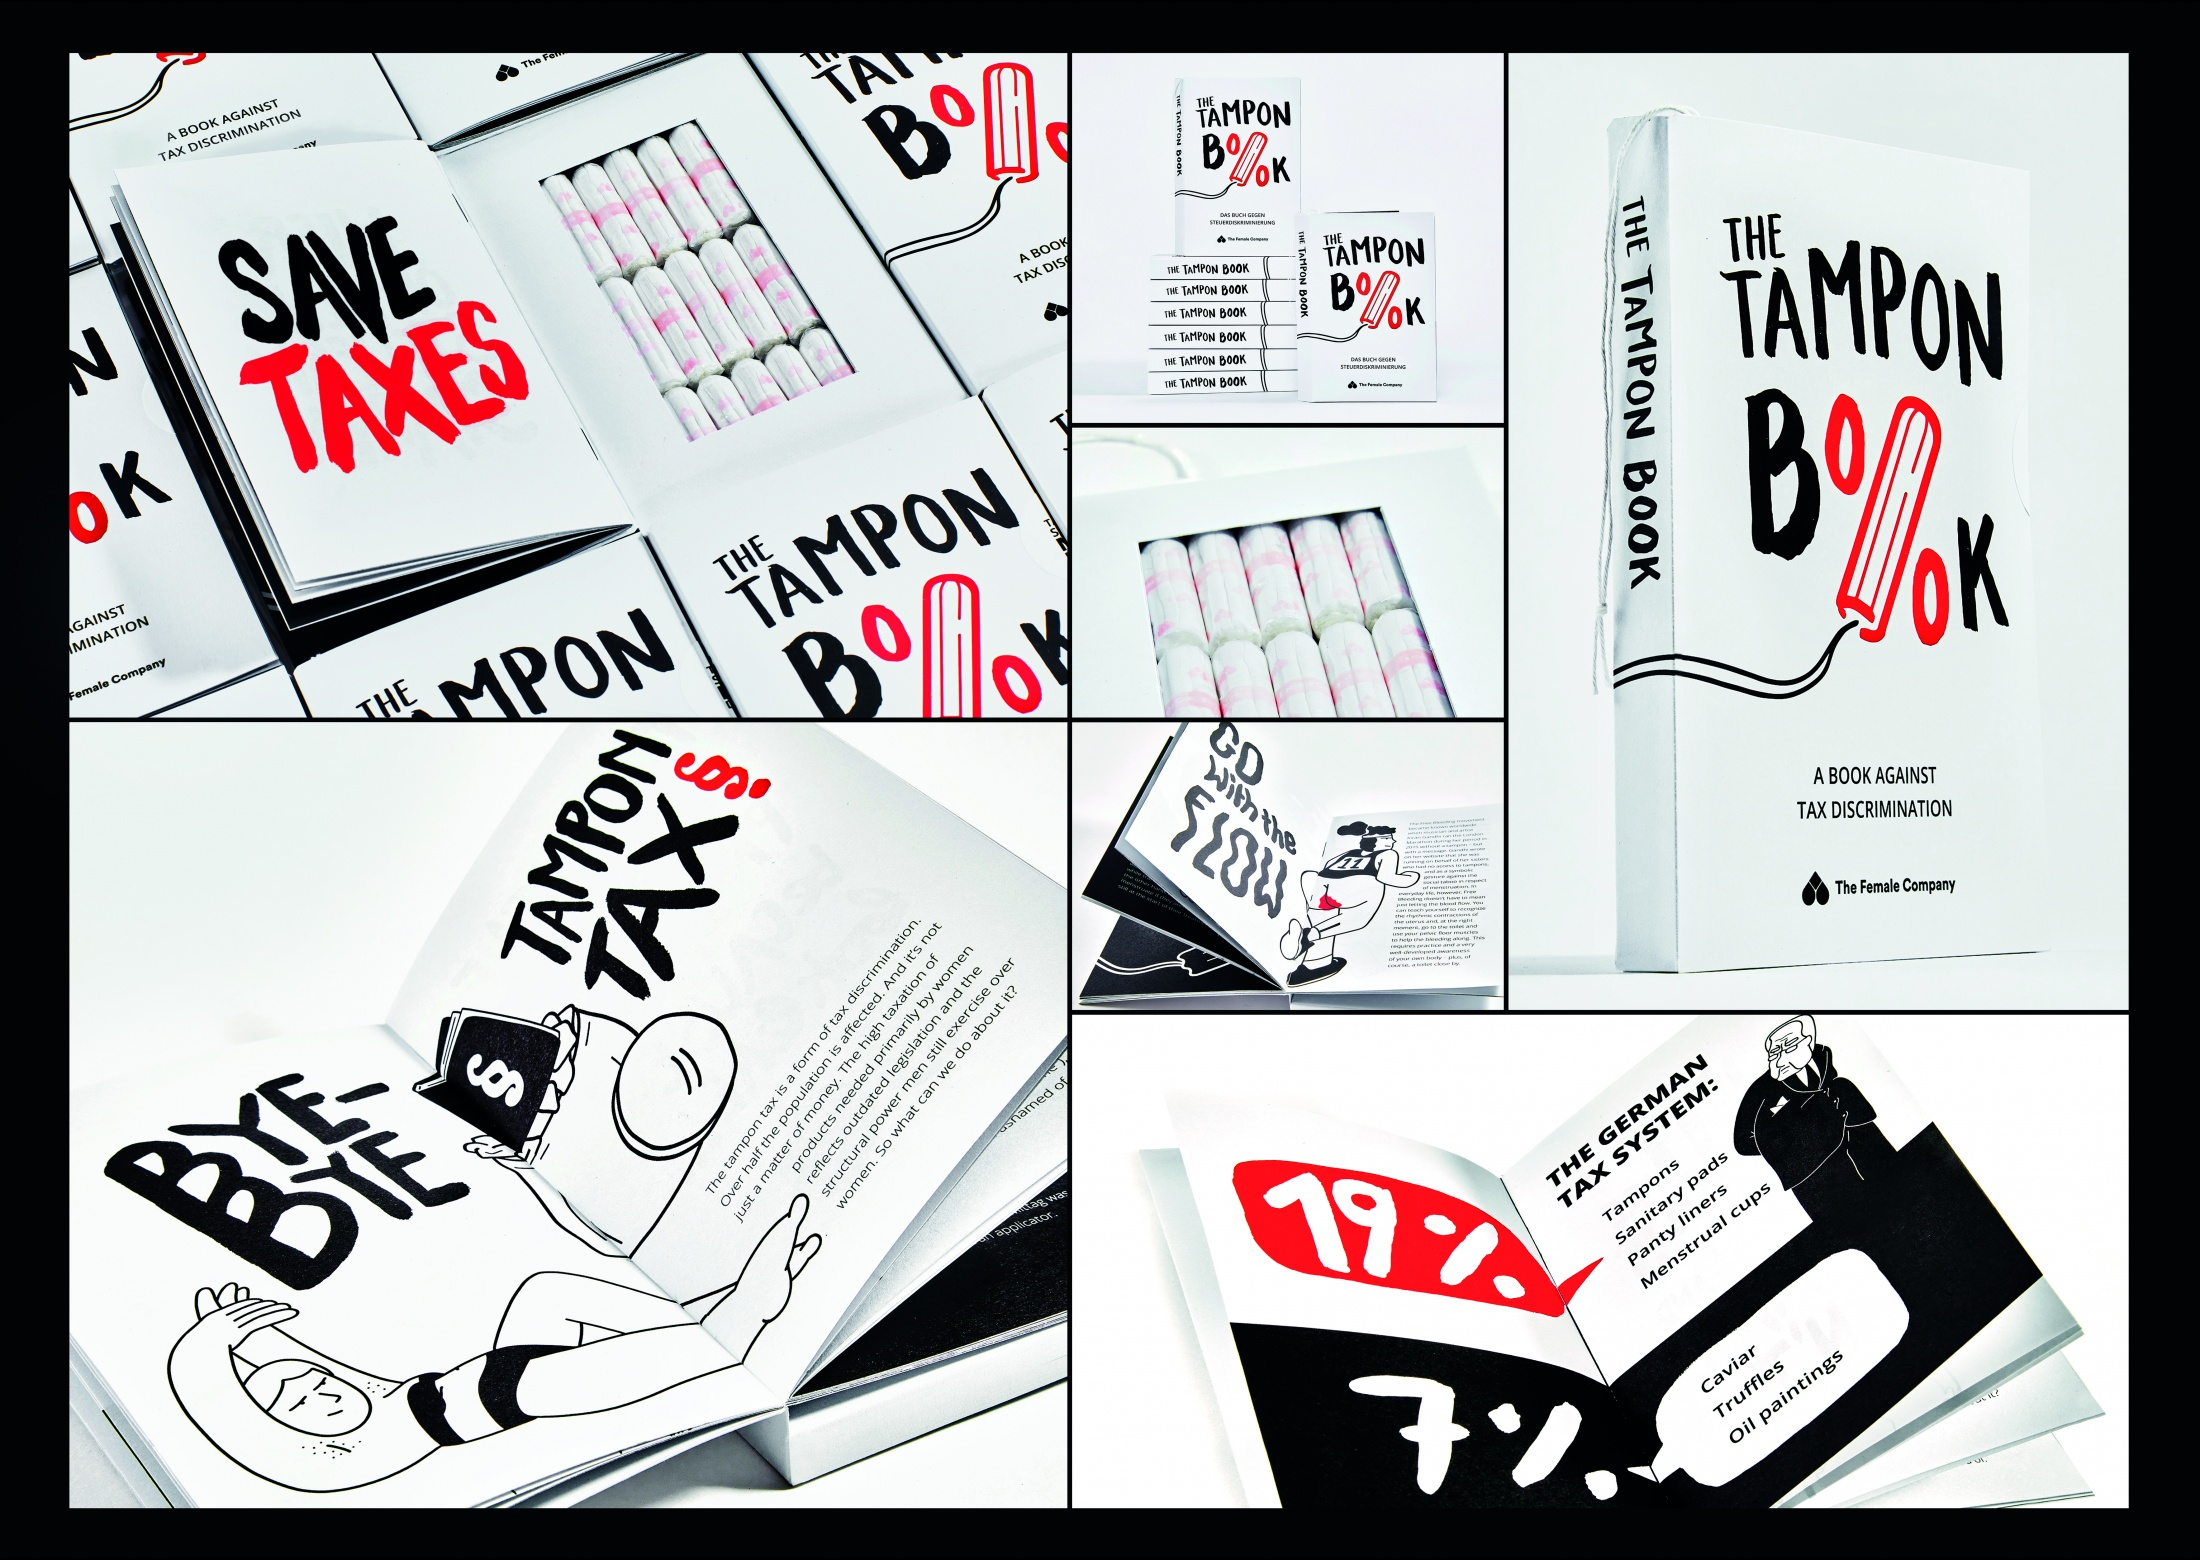 Thumbnail for The Tampon Book: a book against tax discrimination